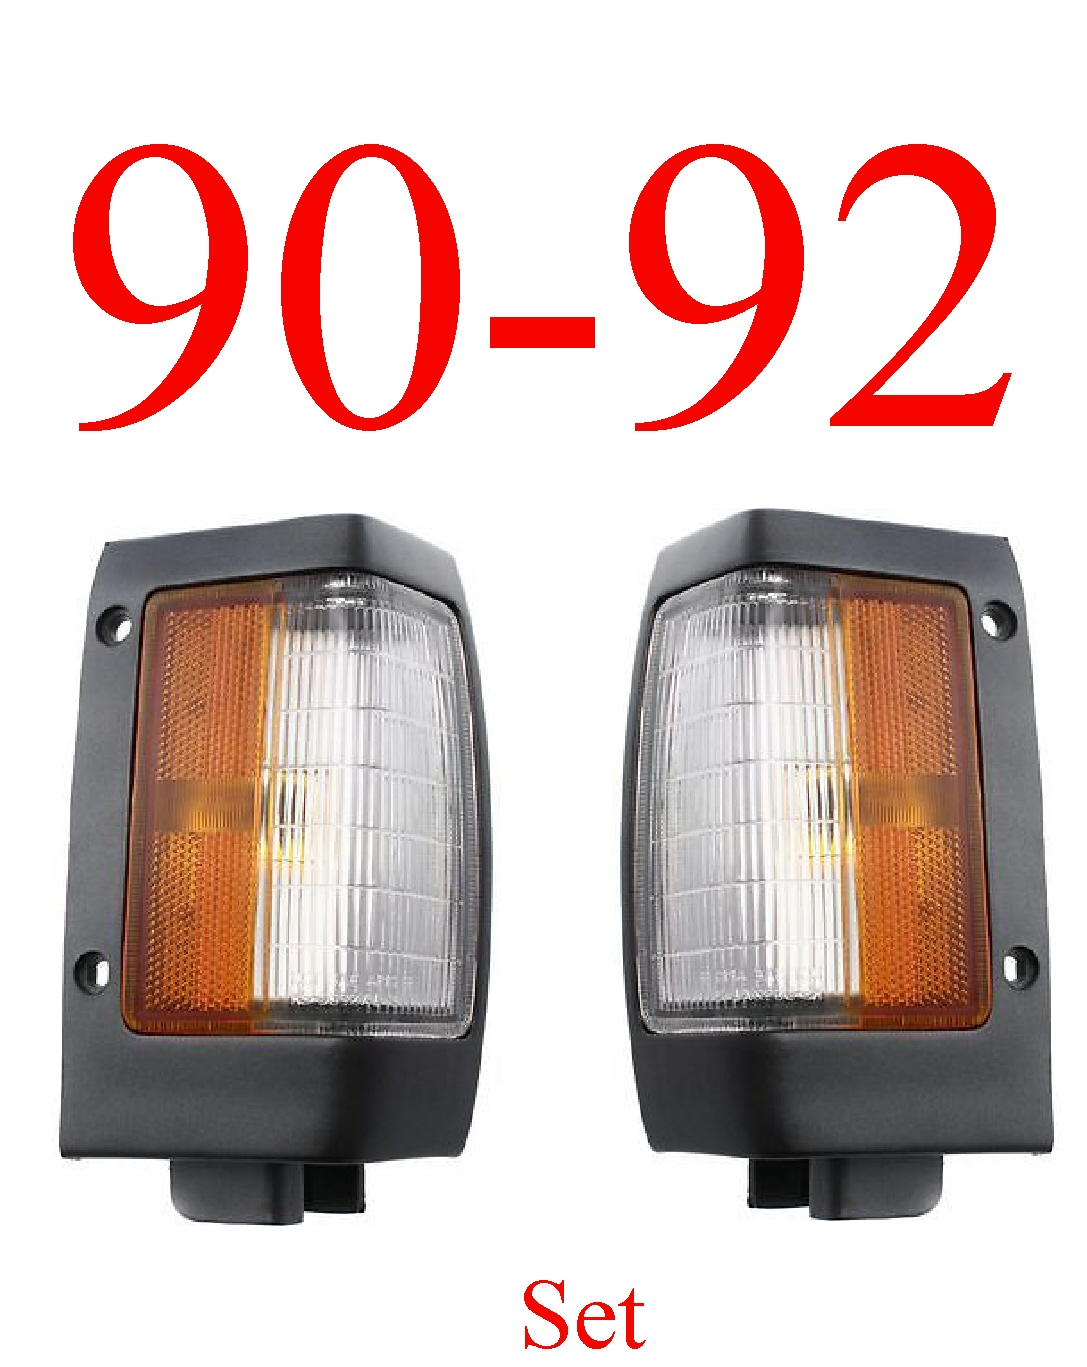 90-92 Nissan Hardbody Black Parking Light Set